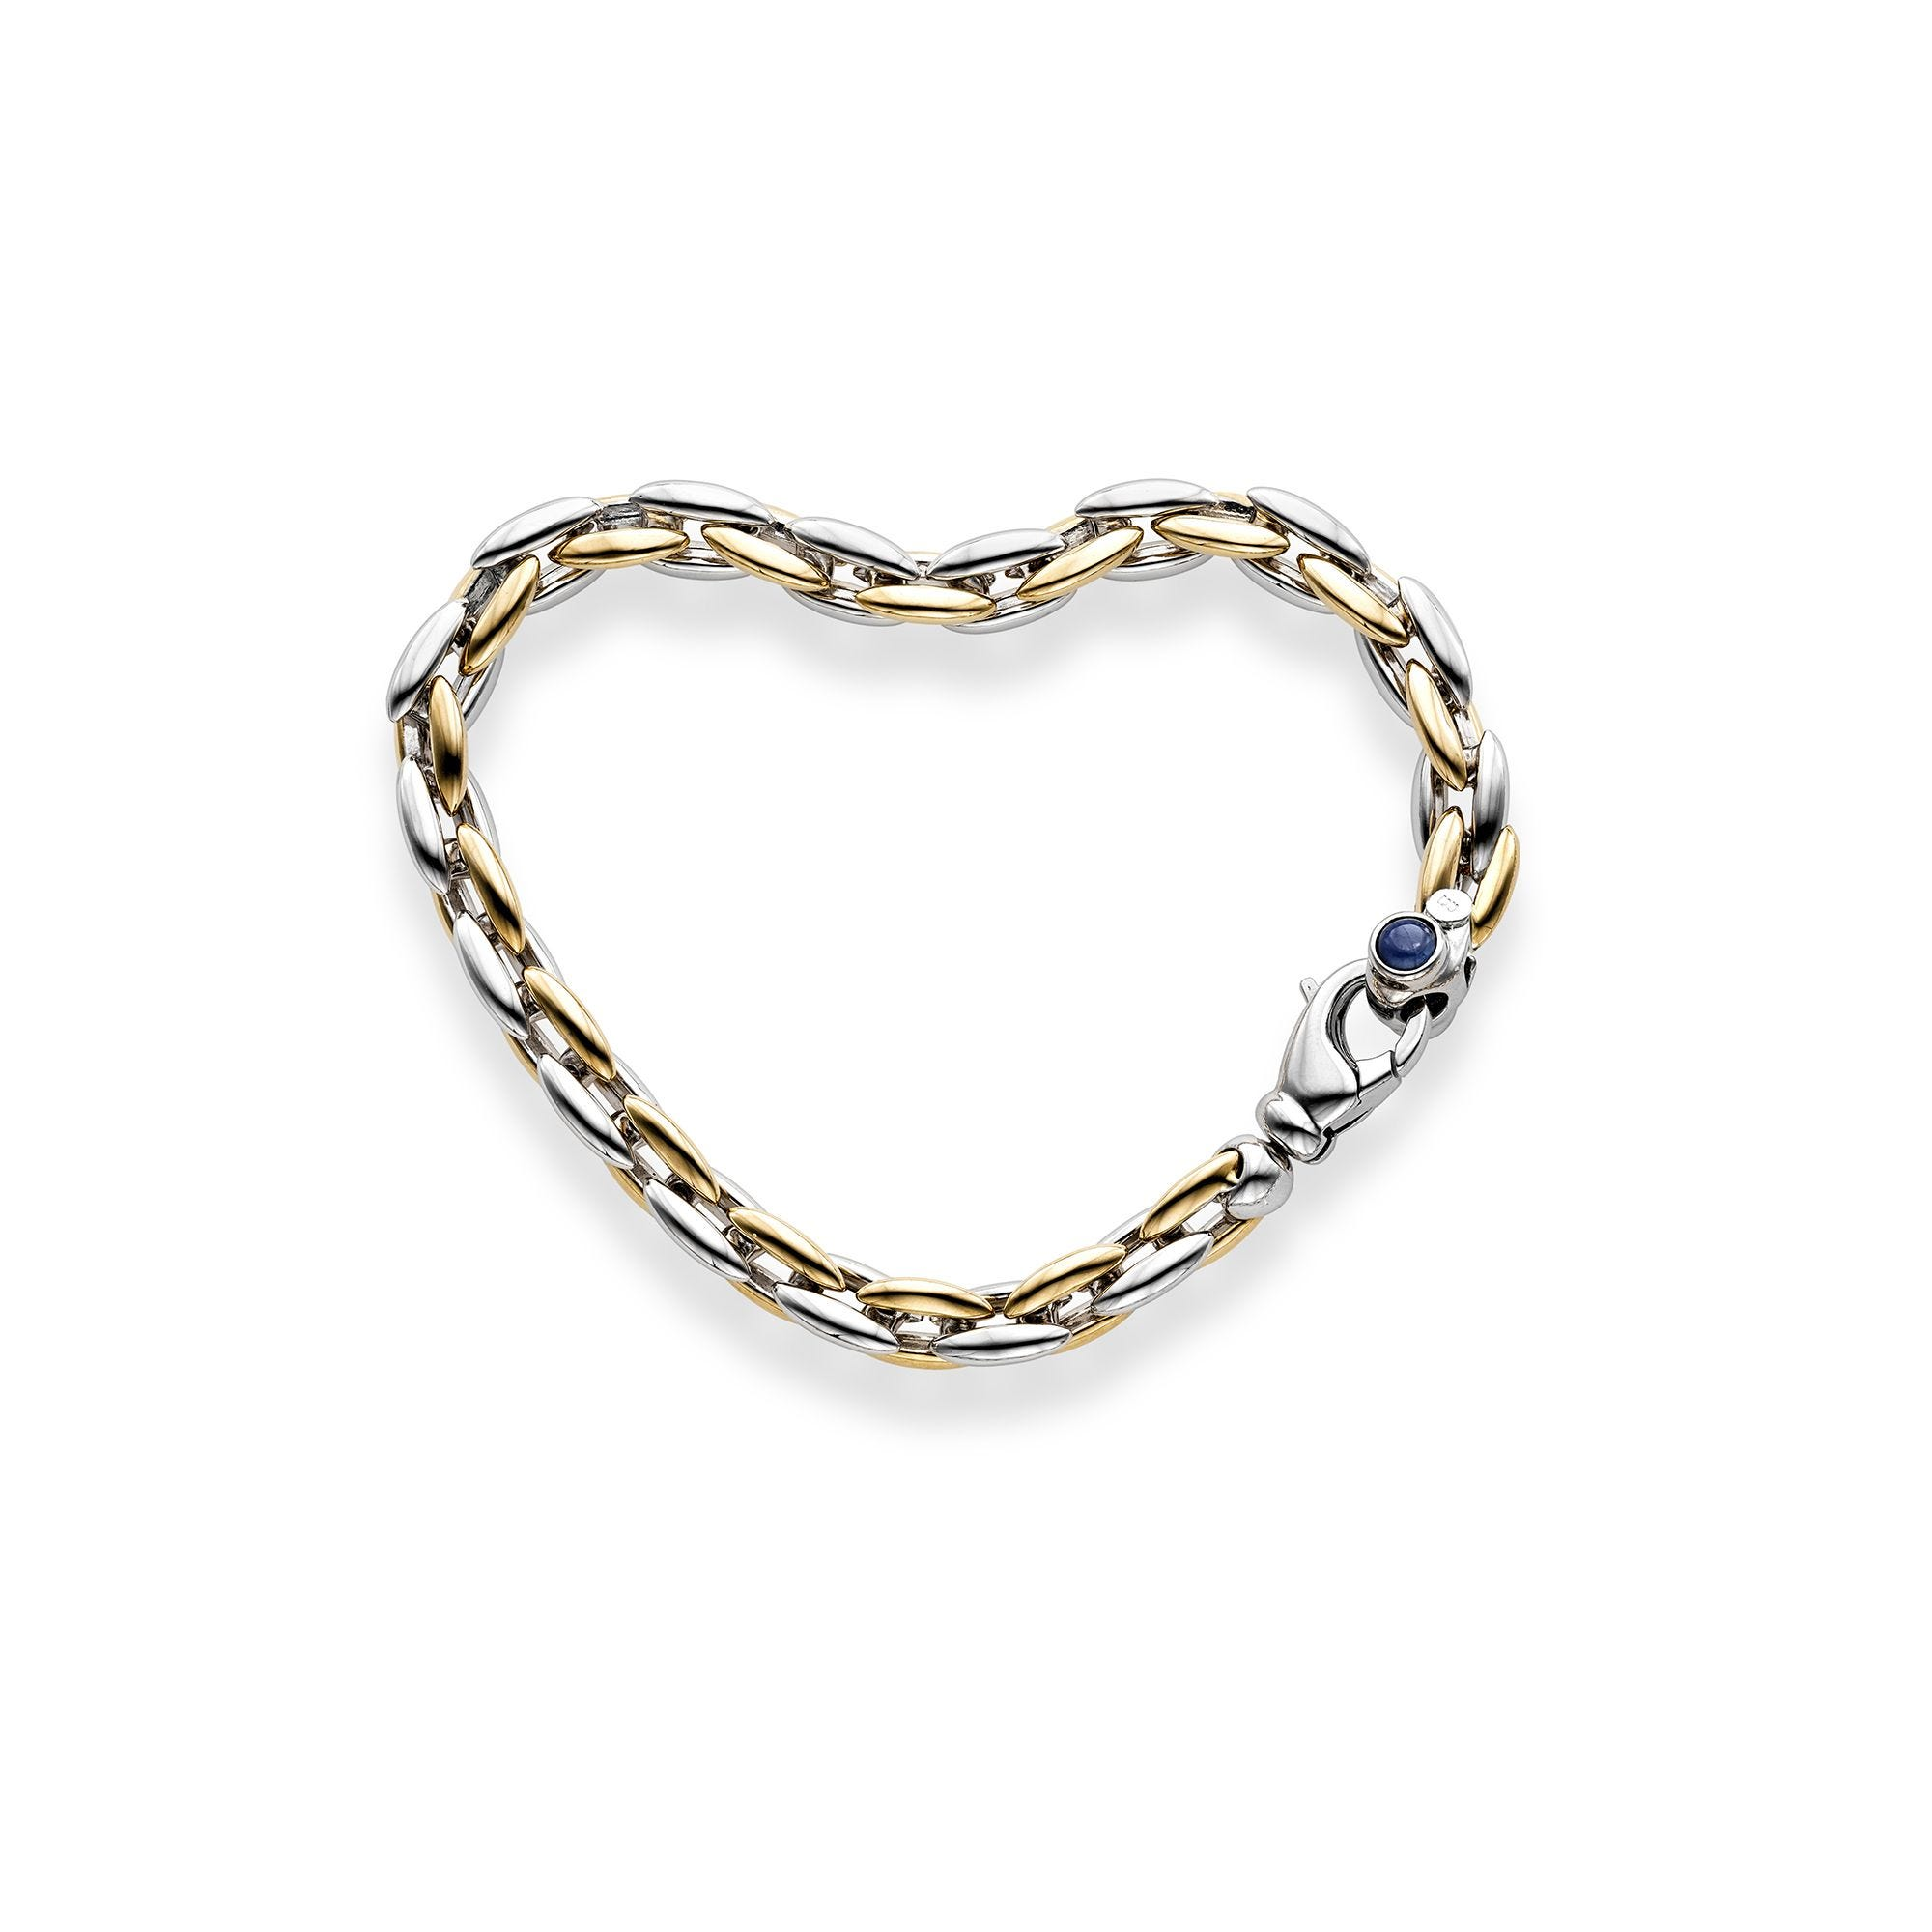 Oval Link Bracelet with Sky Blue Sapphire Accents in 14k Two-Tone